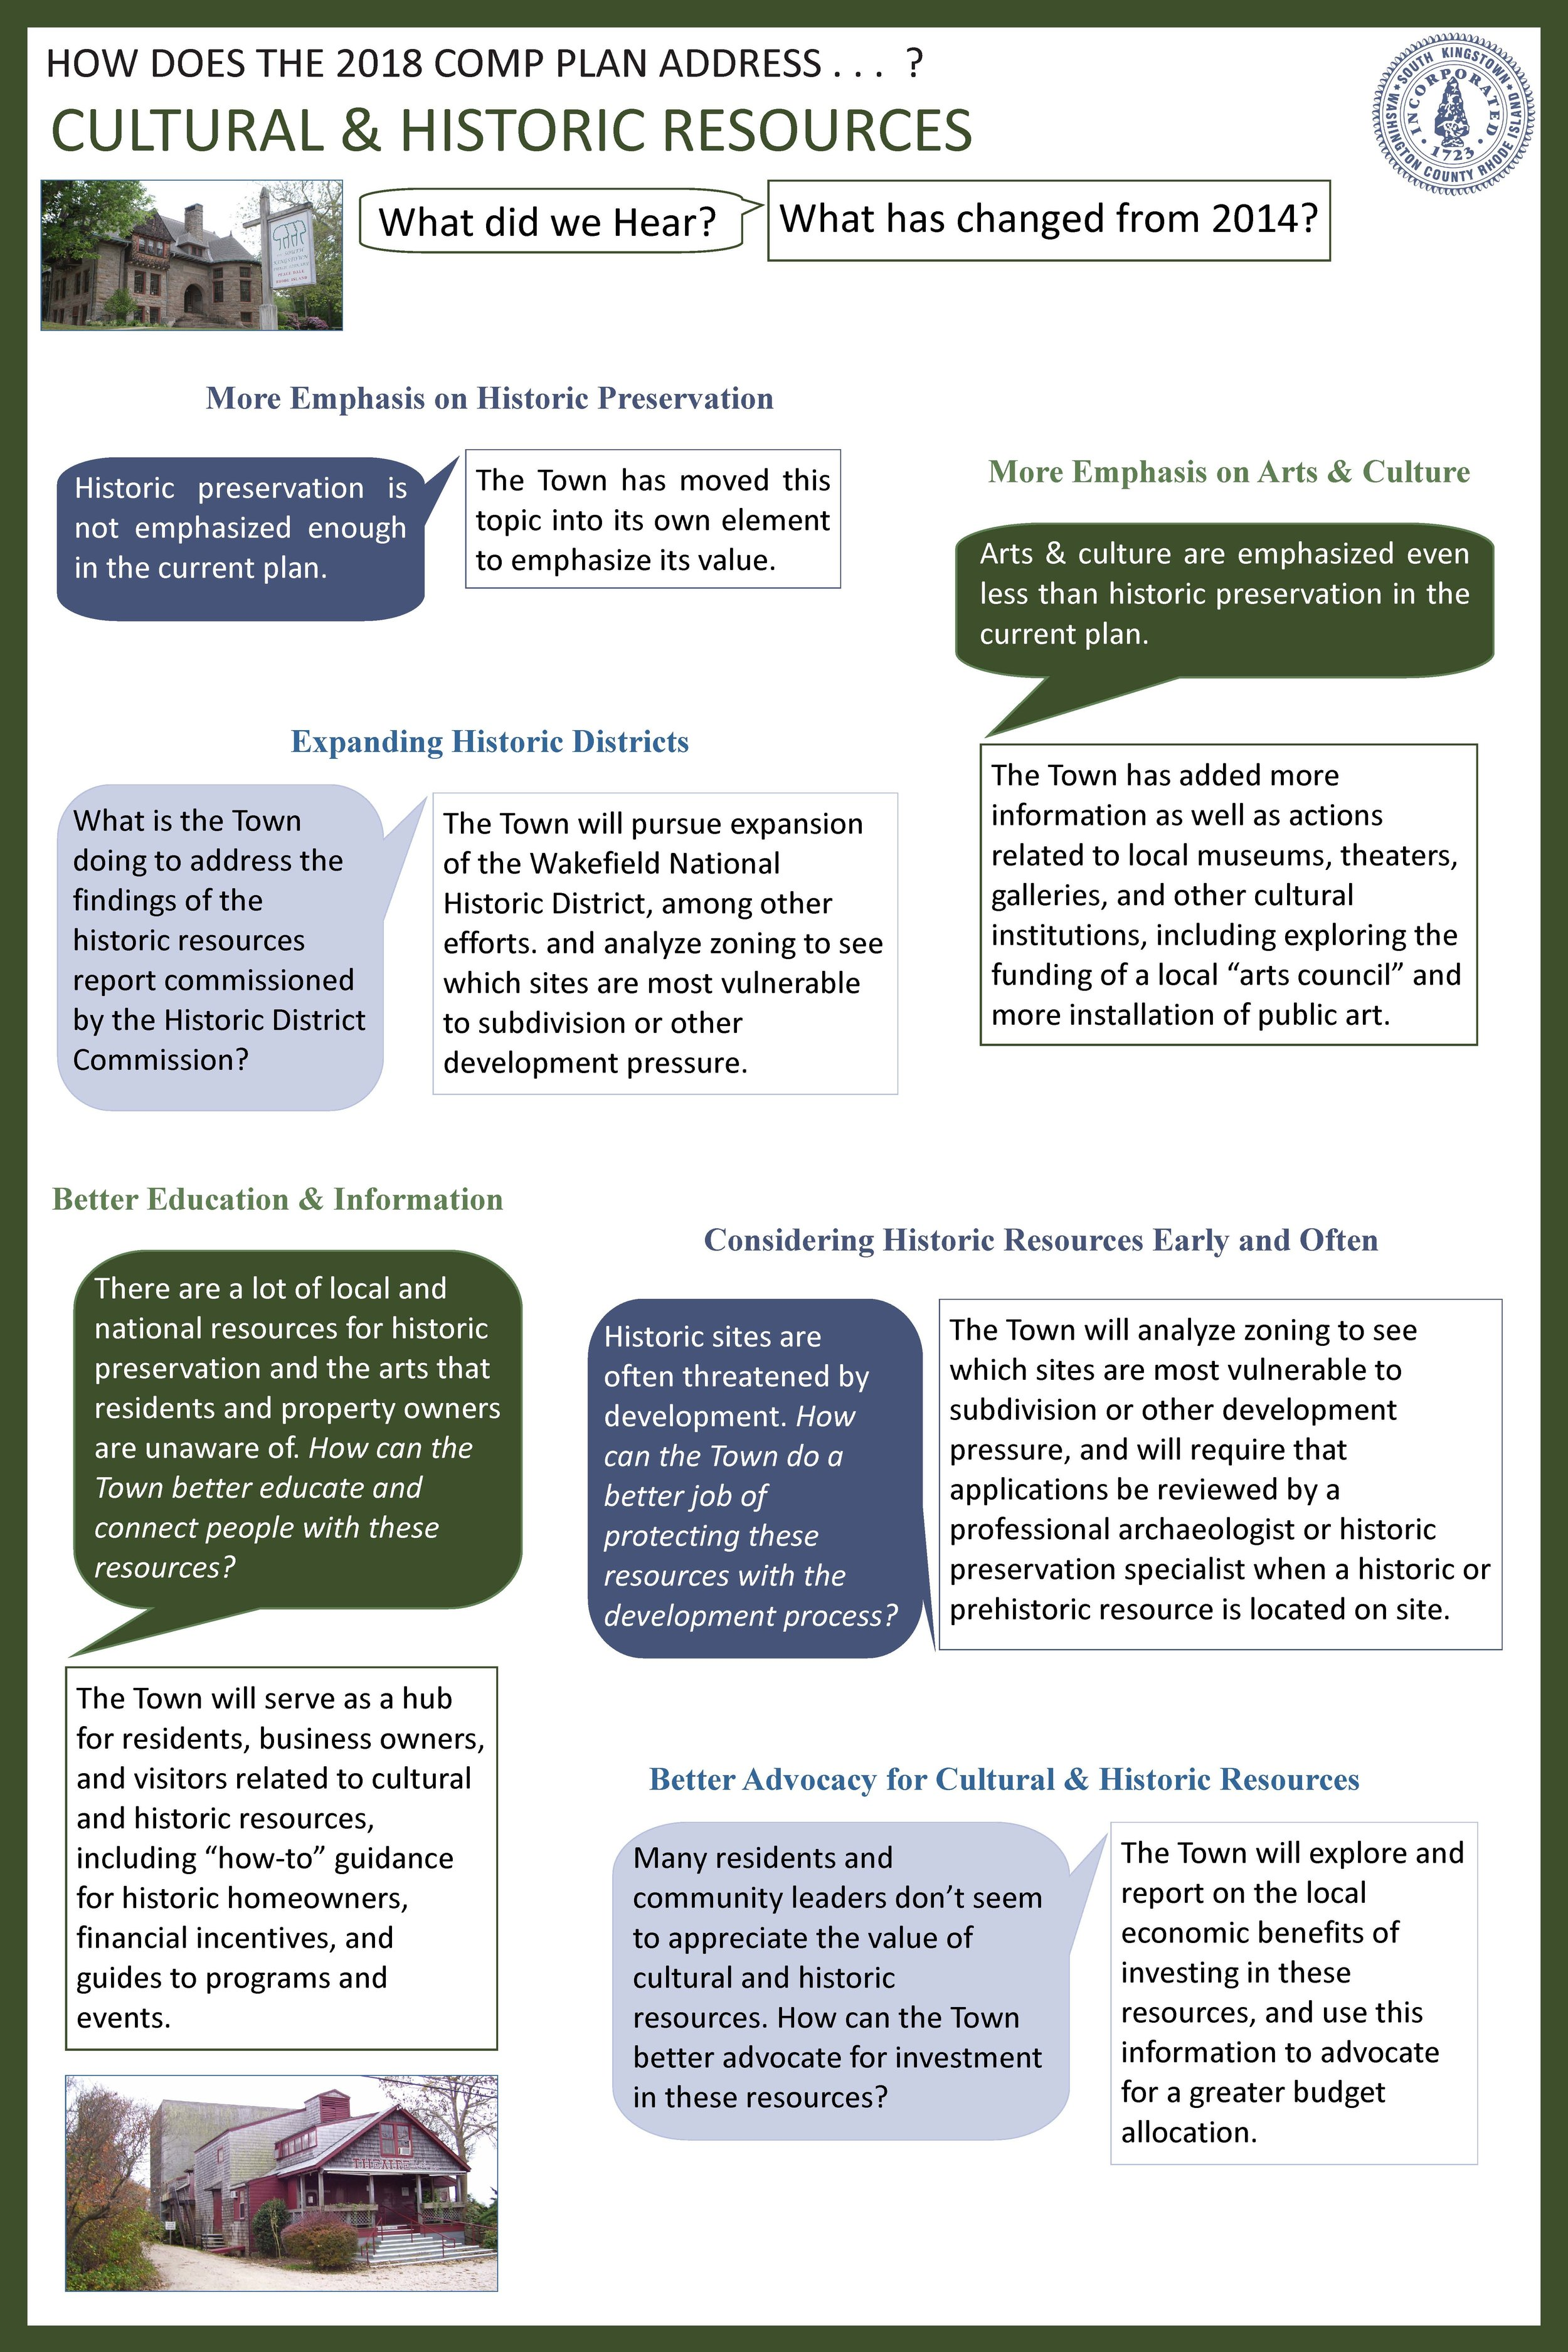 Cultural and Historic Resources Poster.jpg